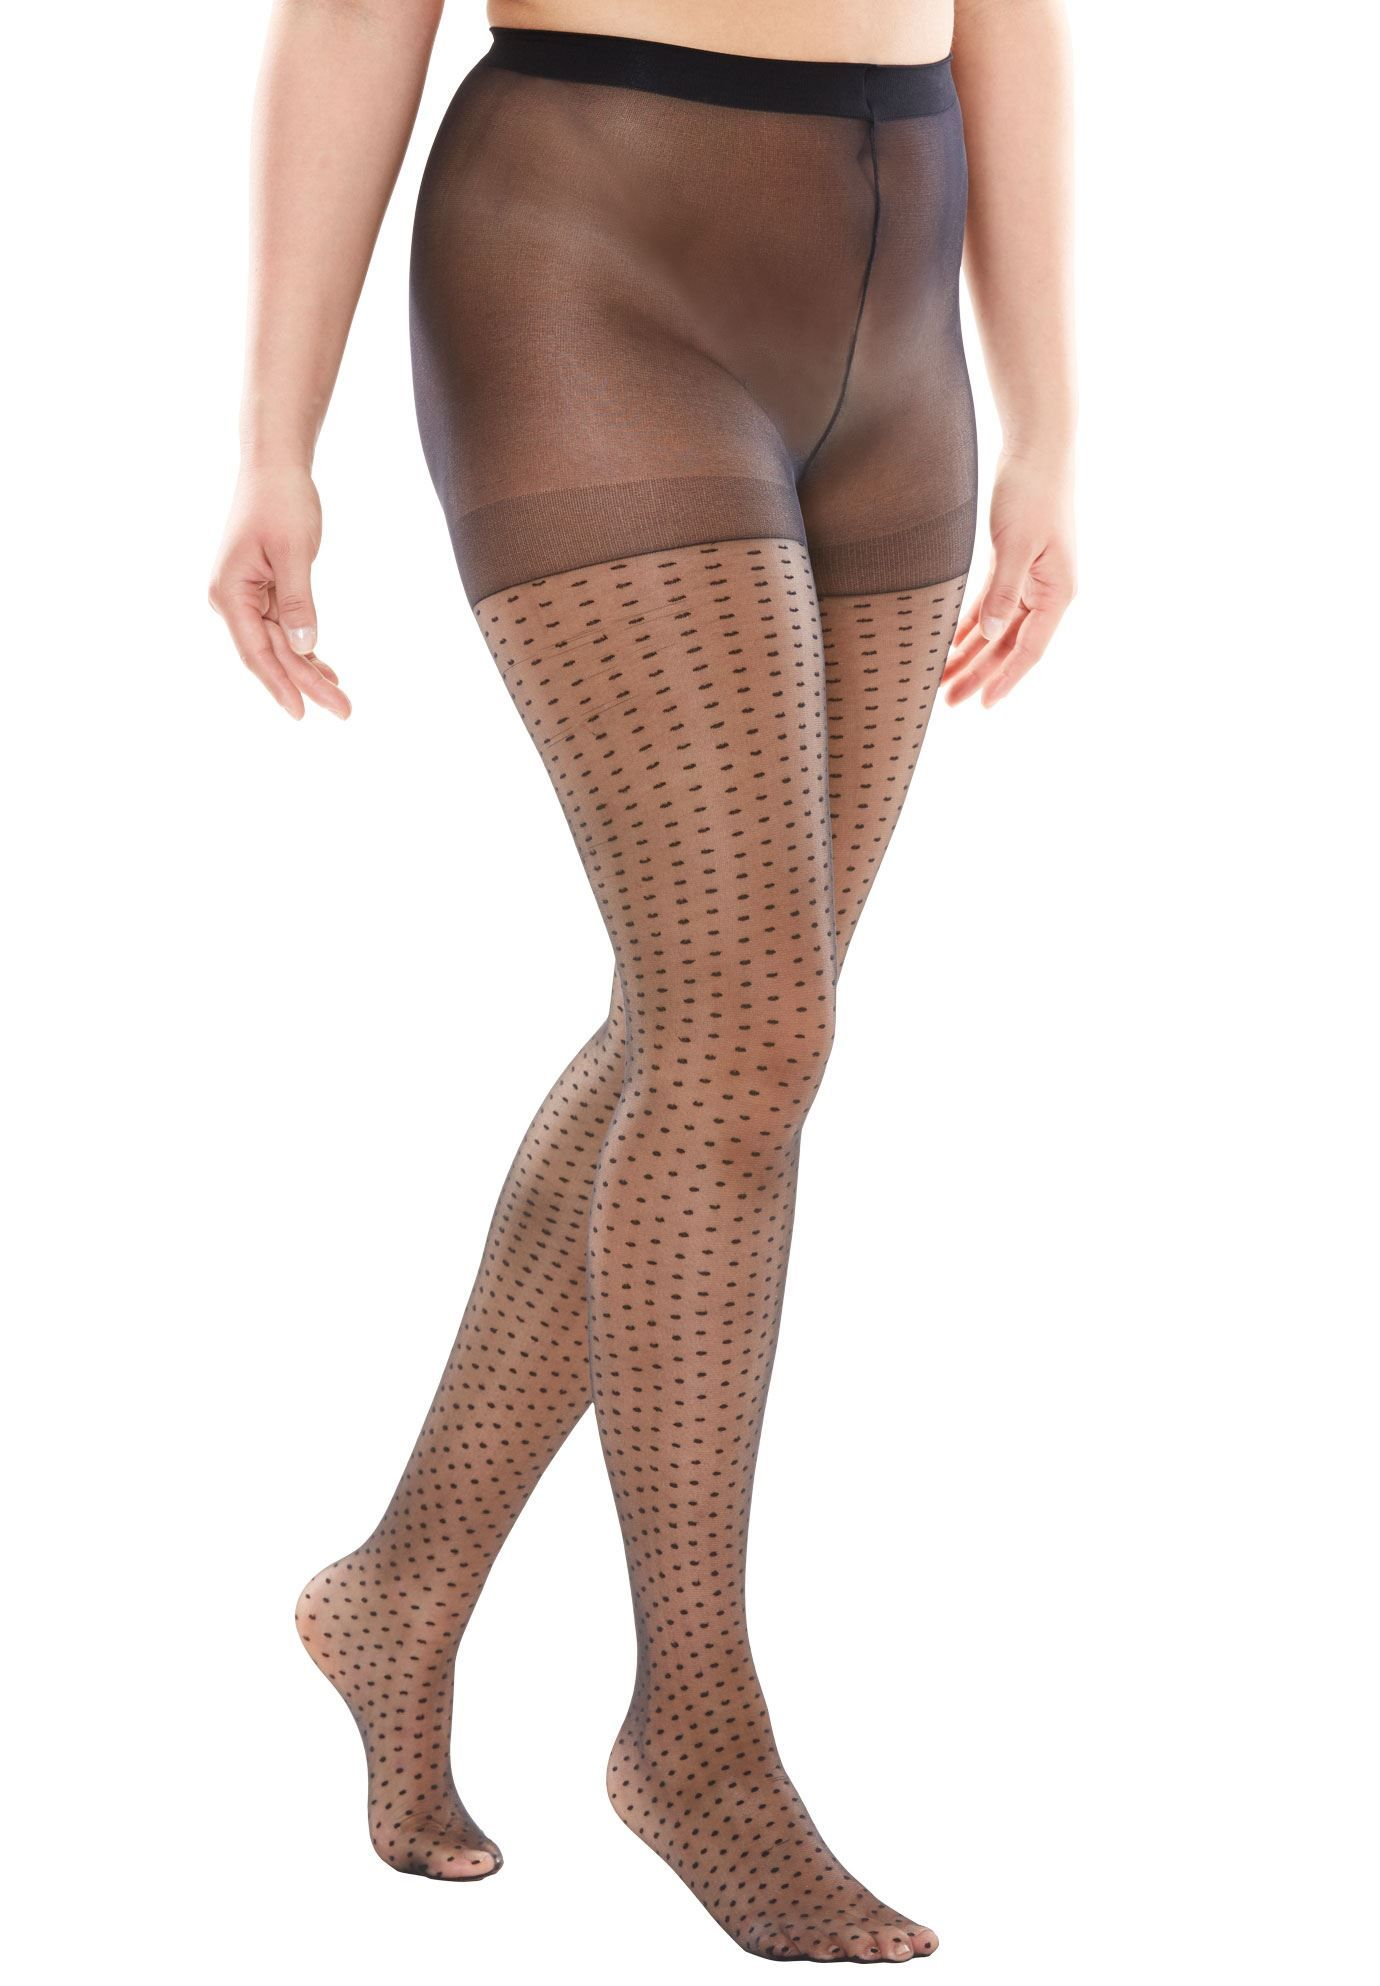 078d6f23c04 2-Pack Pattern Hosiery by Comfort Choice - Women s Plus Size Clothing